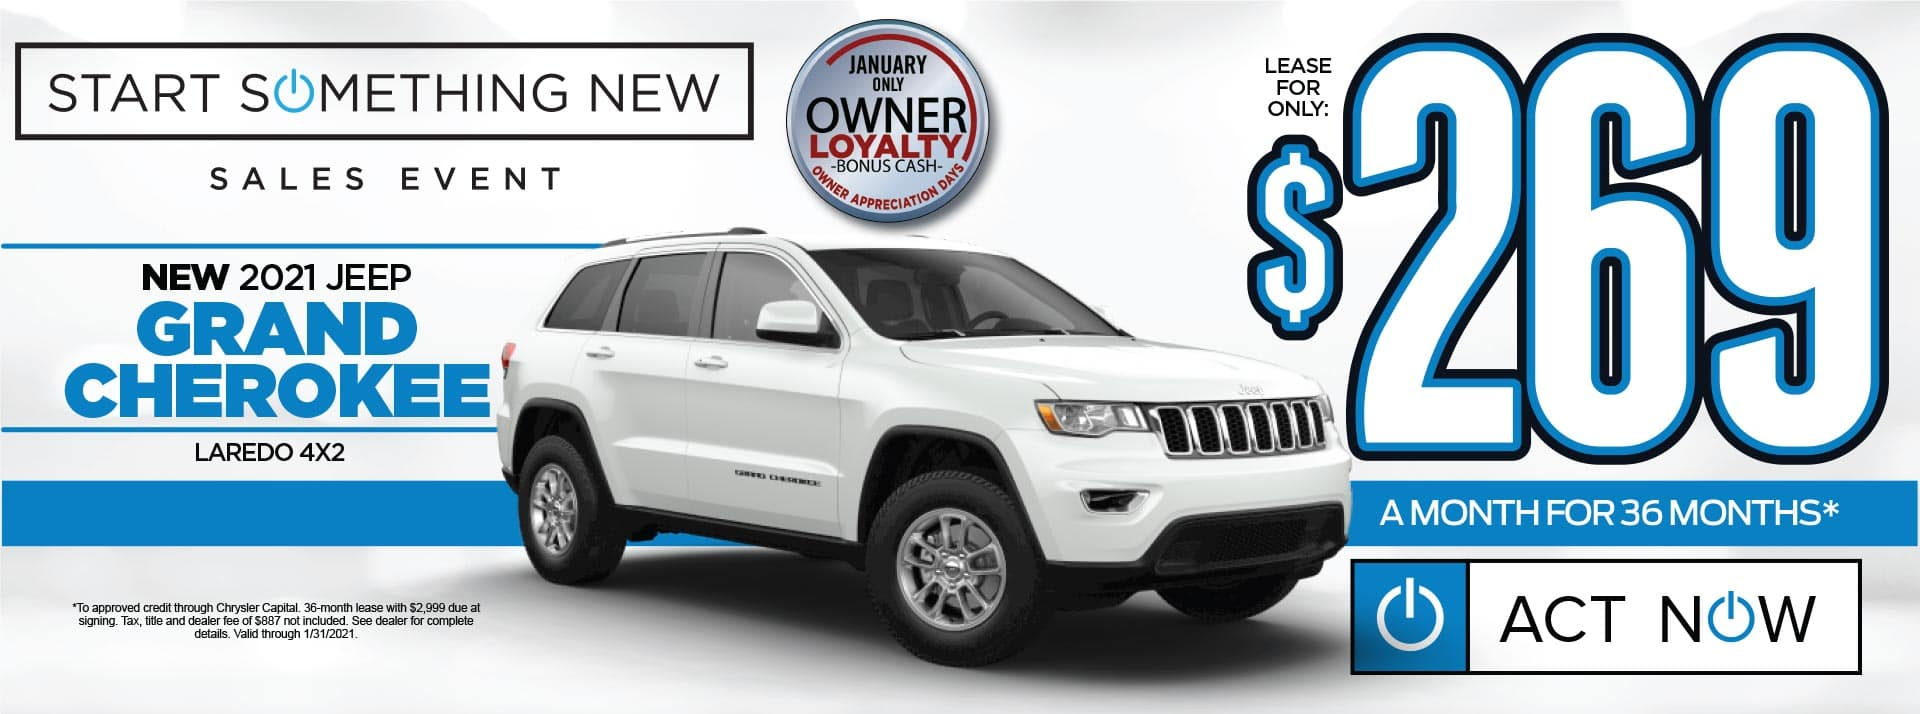 NEW 2021 JEEP GRAND CHEROKEE LAREDO LEASE FOR $269/MO* SHOP NOW